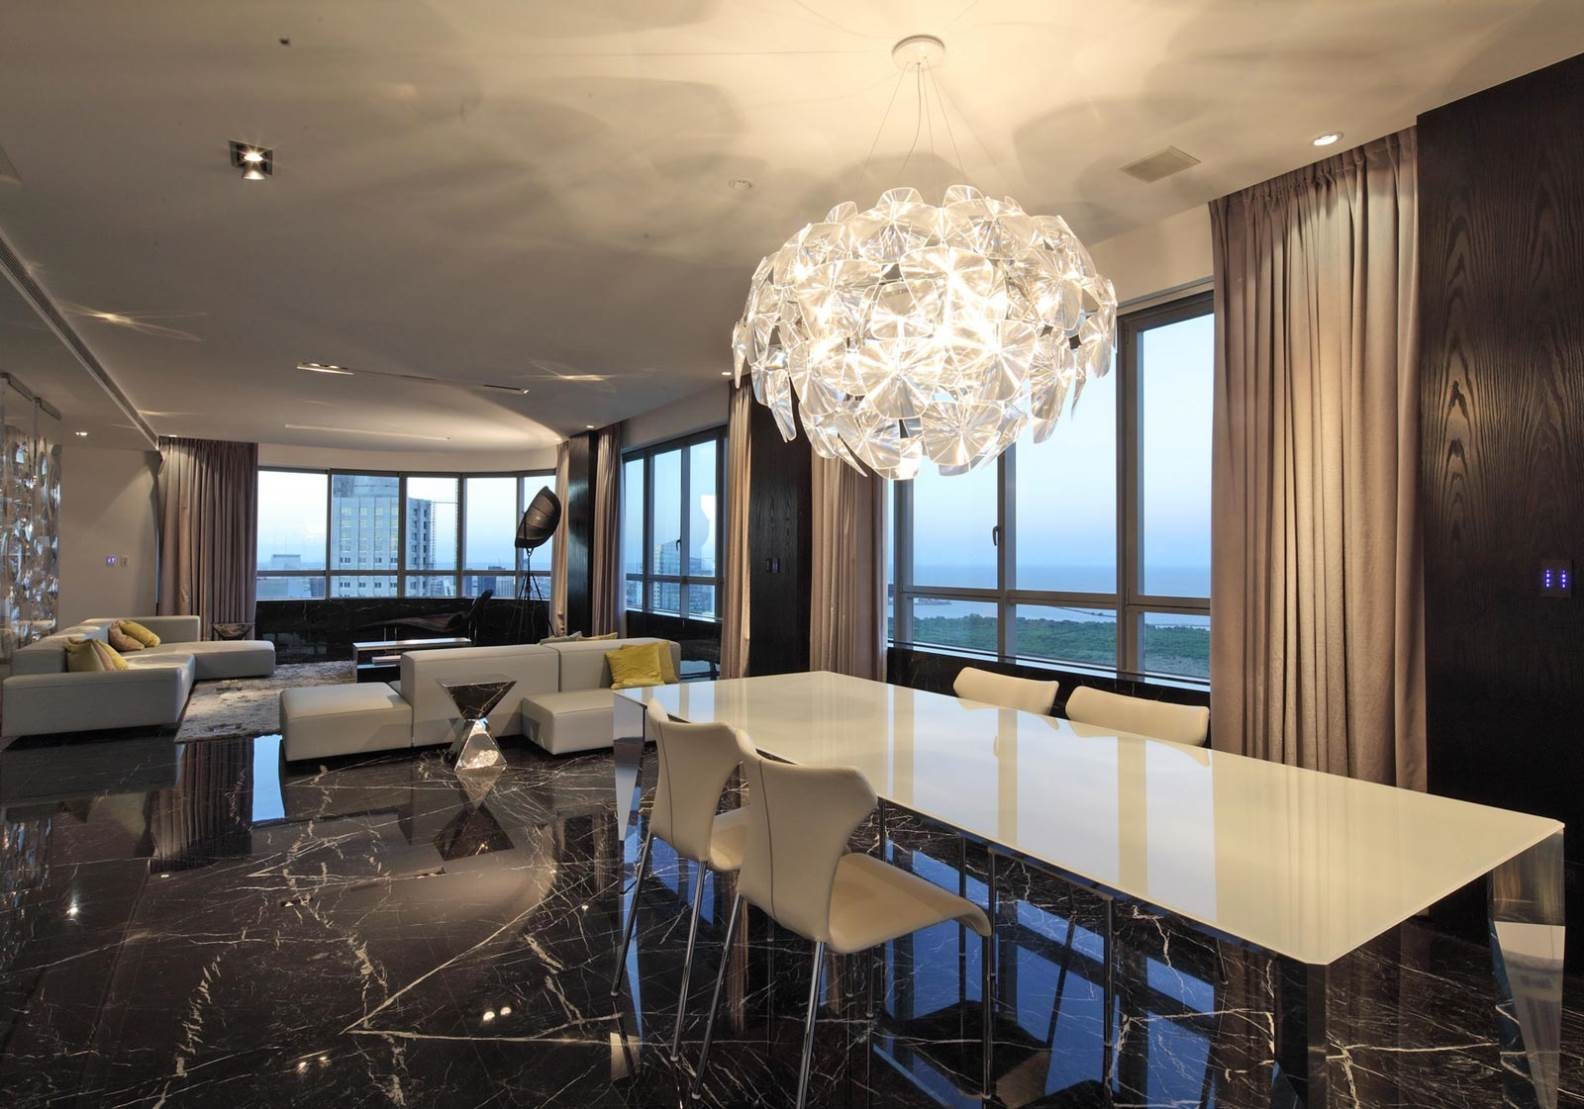 Overwhelming Modern Dining Room Lighting Globe Shape Crystal Shade Within Contemporary Large Chandeliers (Image 15 of 15)